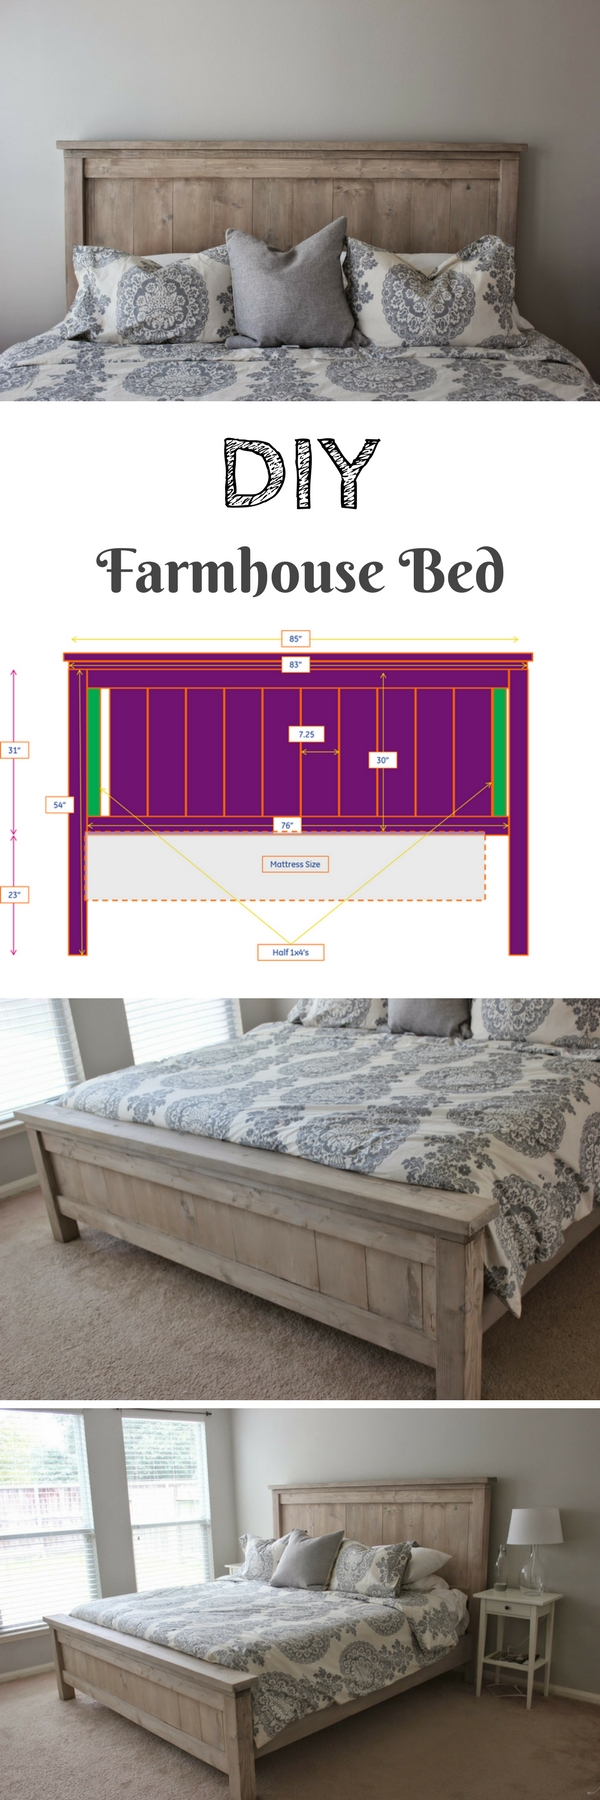 45 Easy DIY Bed Frame Projects You Can Build on a Budget - Check out how to build a DIY farmhouse bed